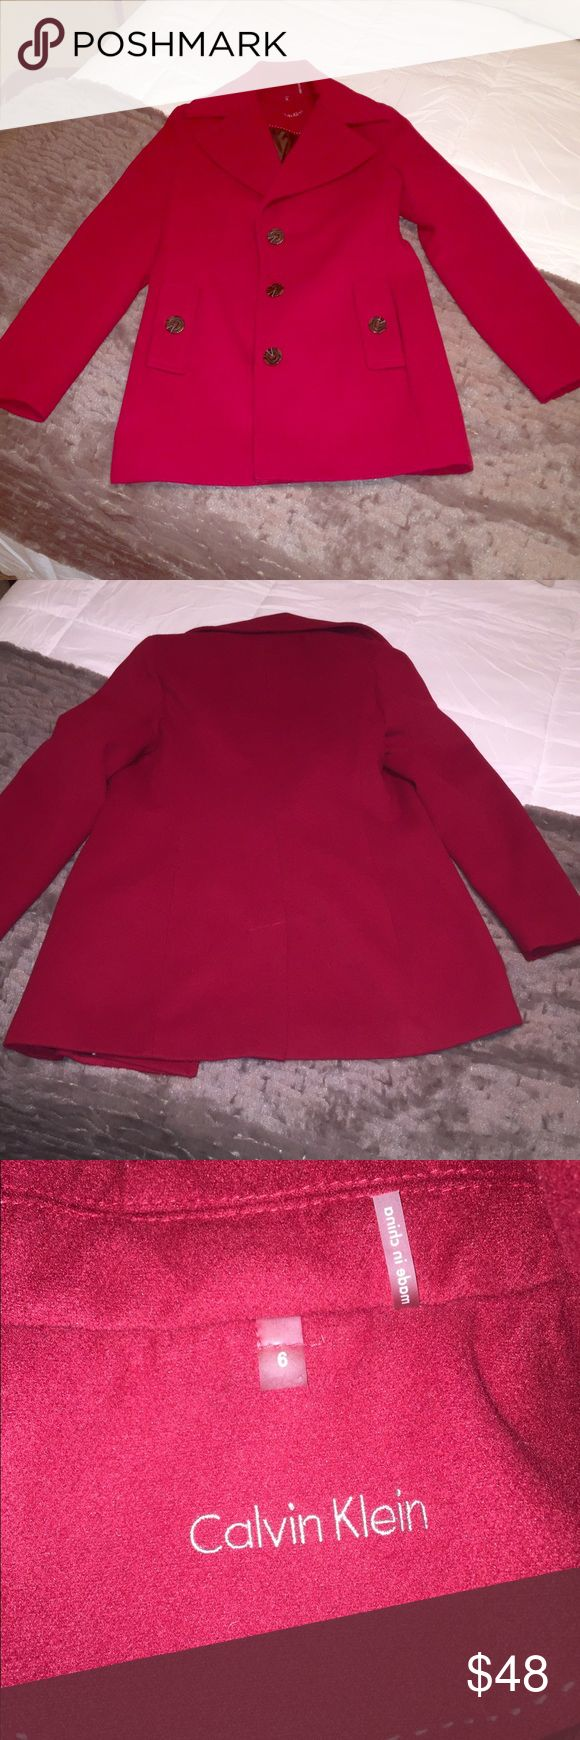 Calvin Klein red pea coat with black buttons Calvin Klein red pea coat with black buttons. Size 6. Calvin Klein Jackets & Coats Pea Coats